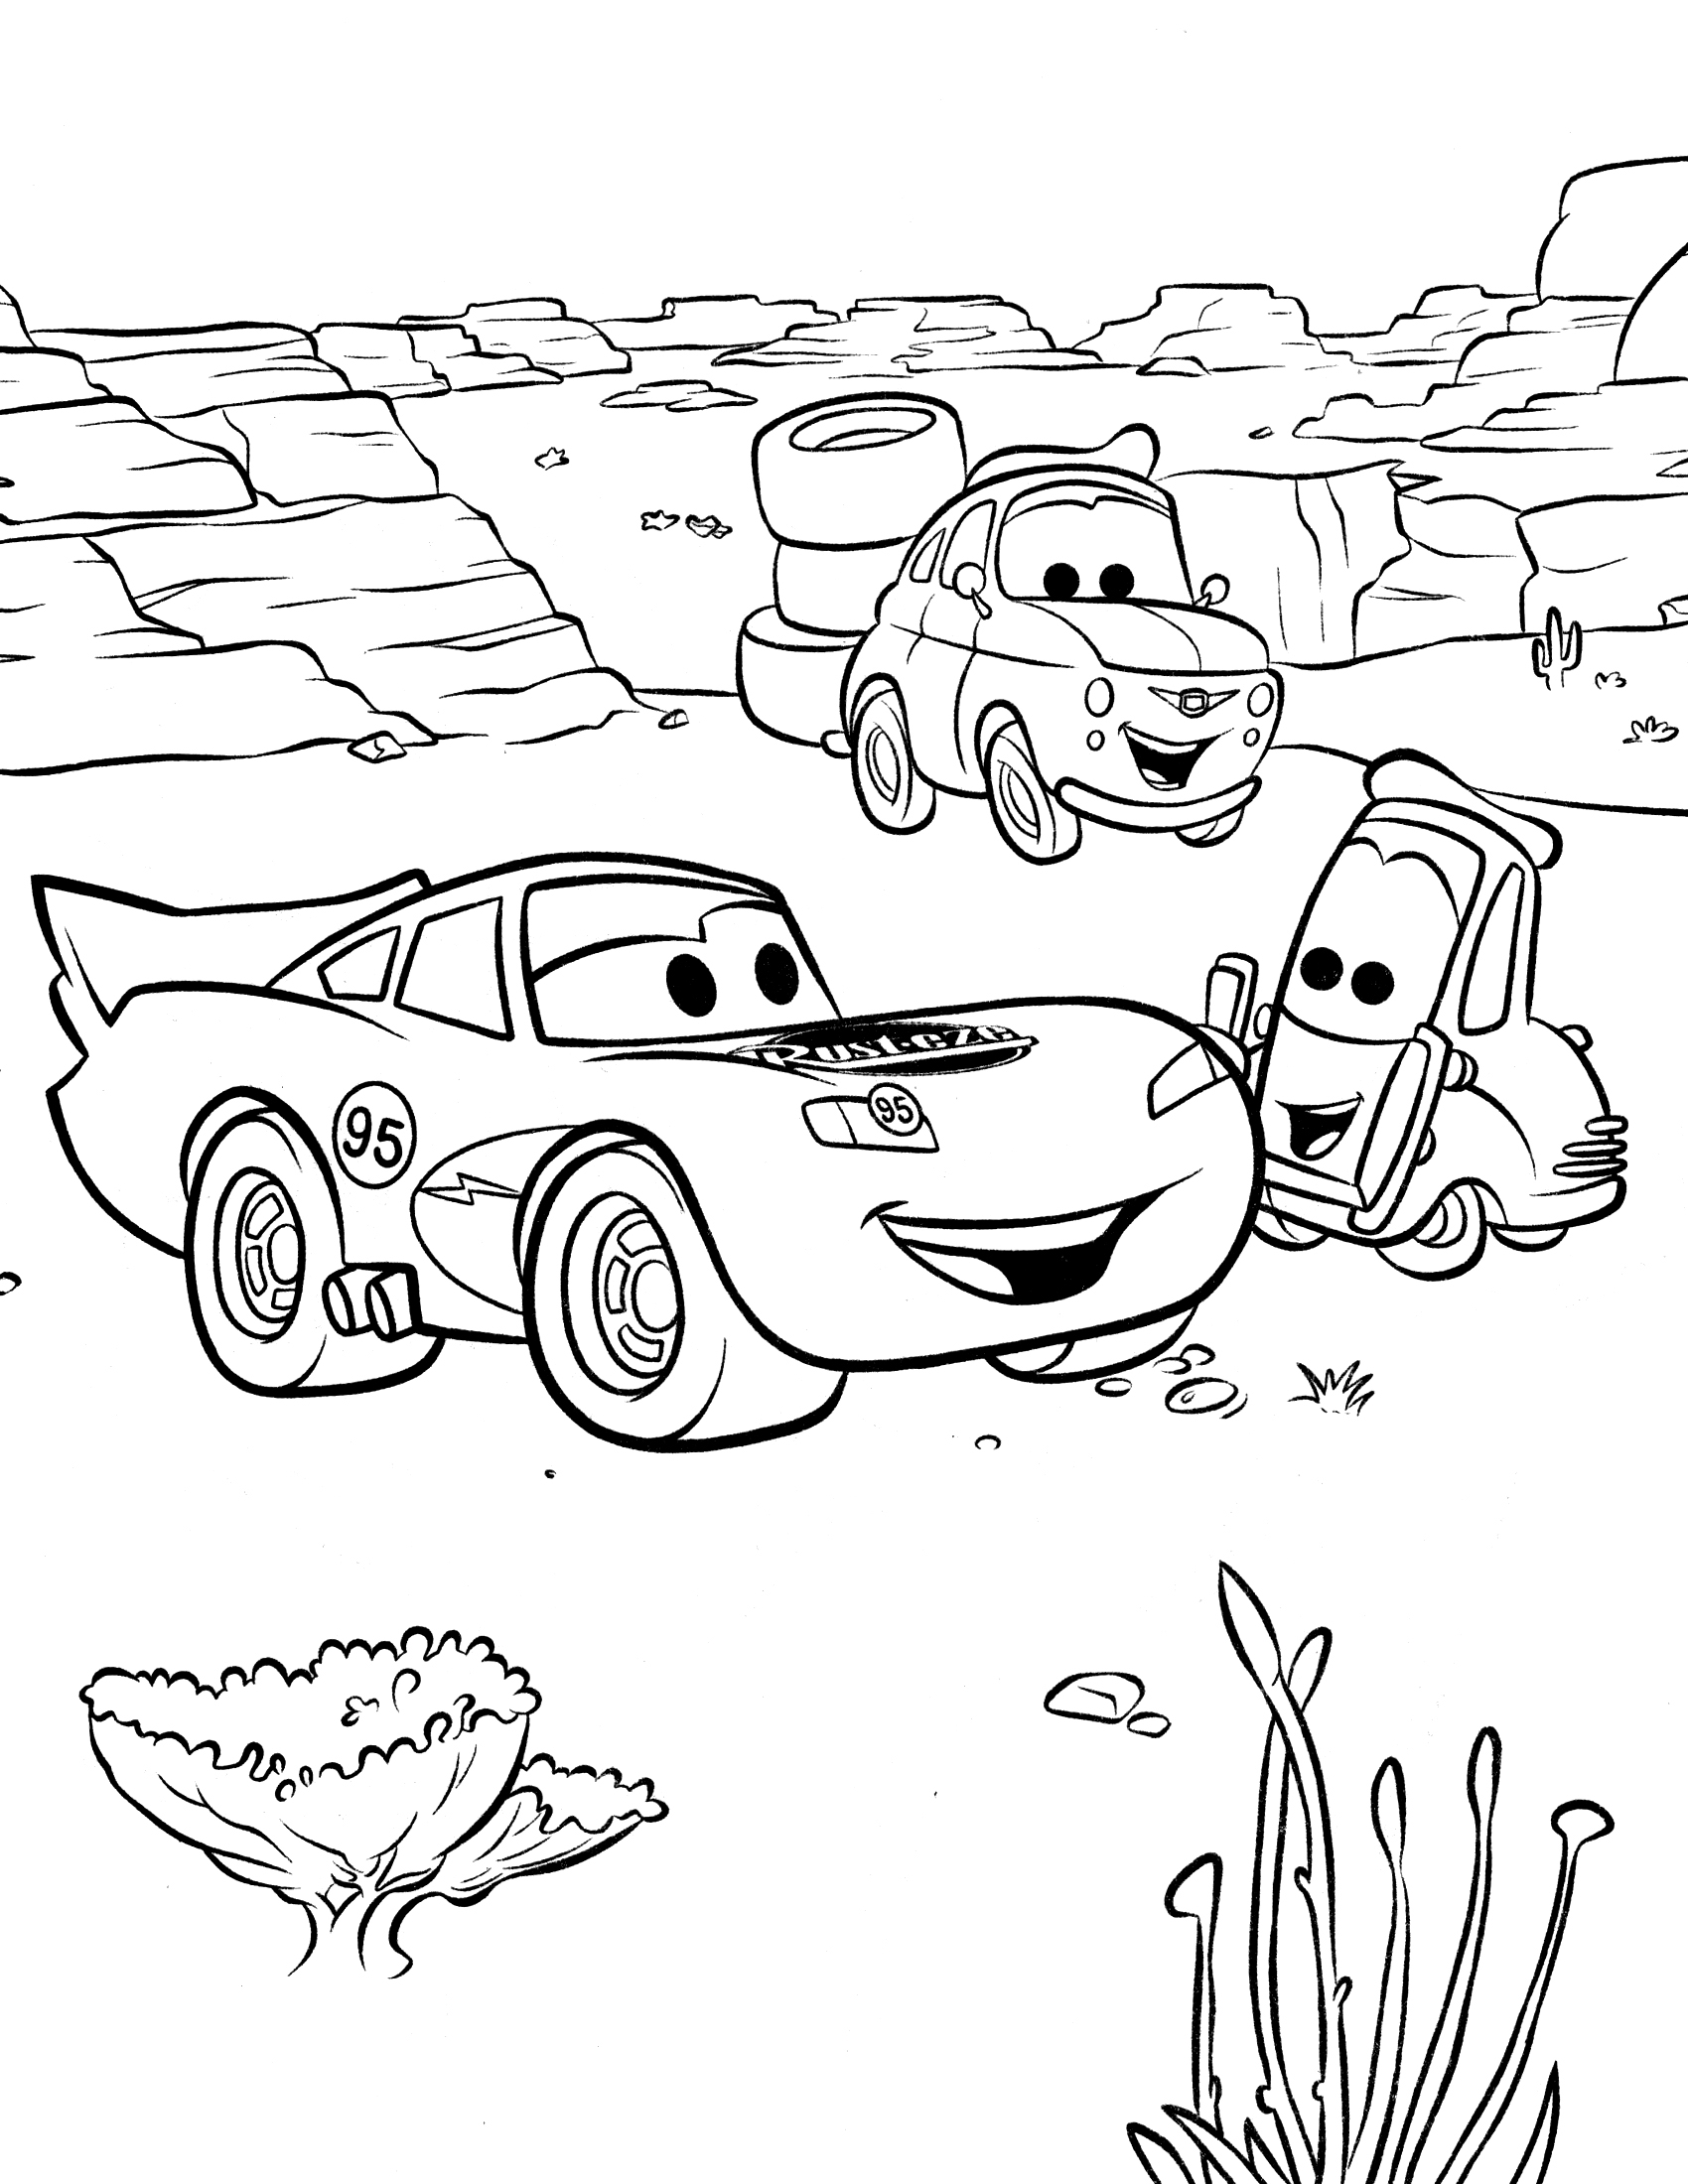 cars the movie coloring pages cars the movie coloring pages to print free coloring sheets coloring cars the movie pages